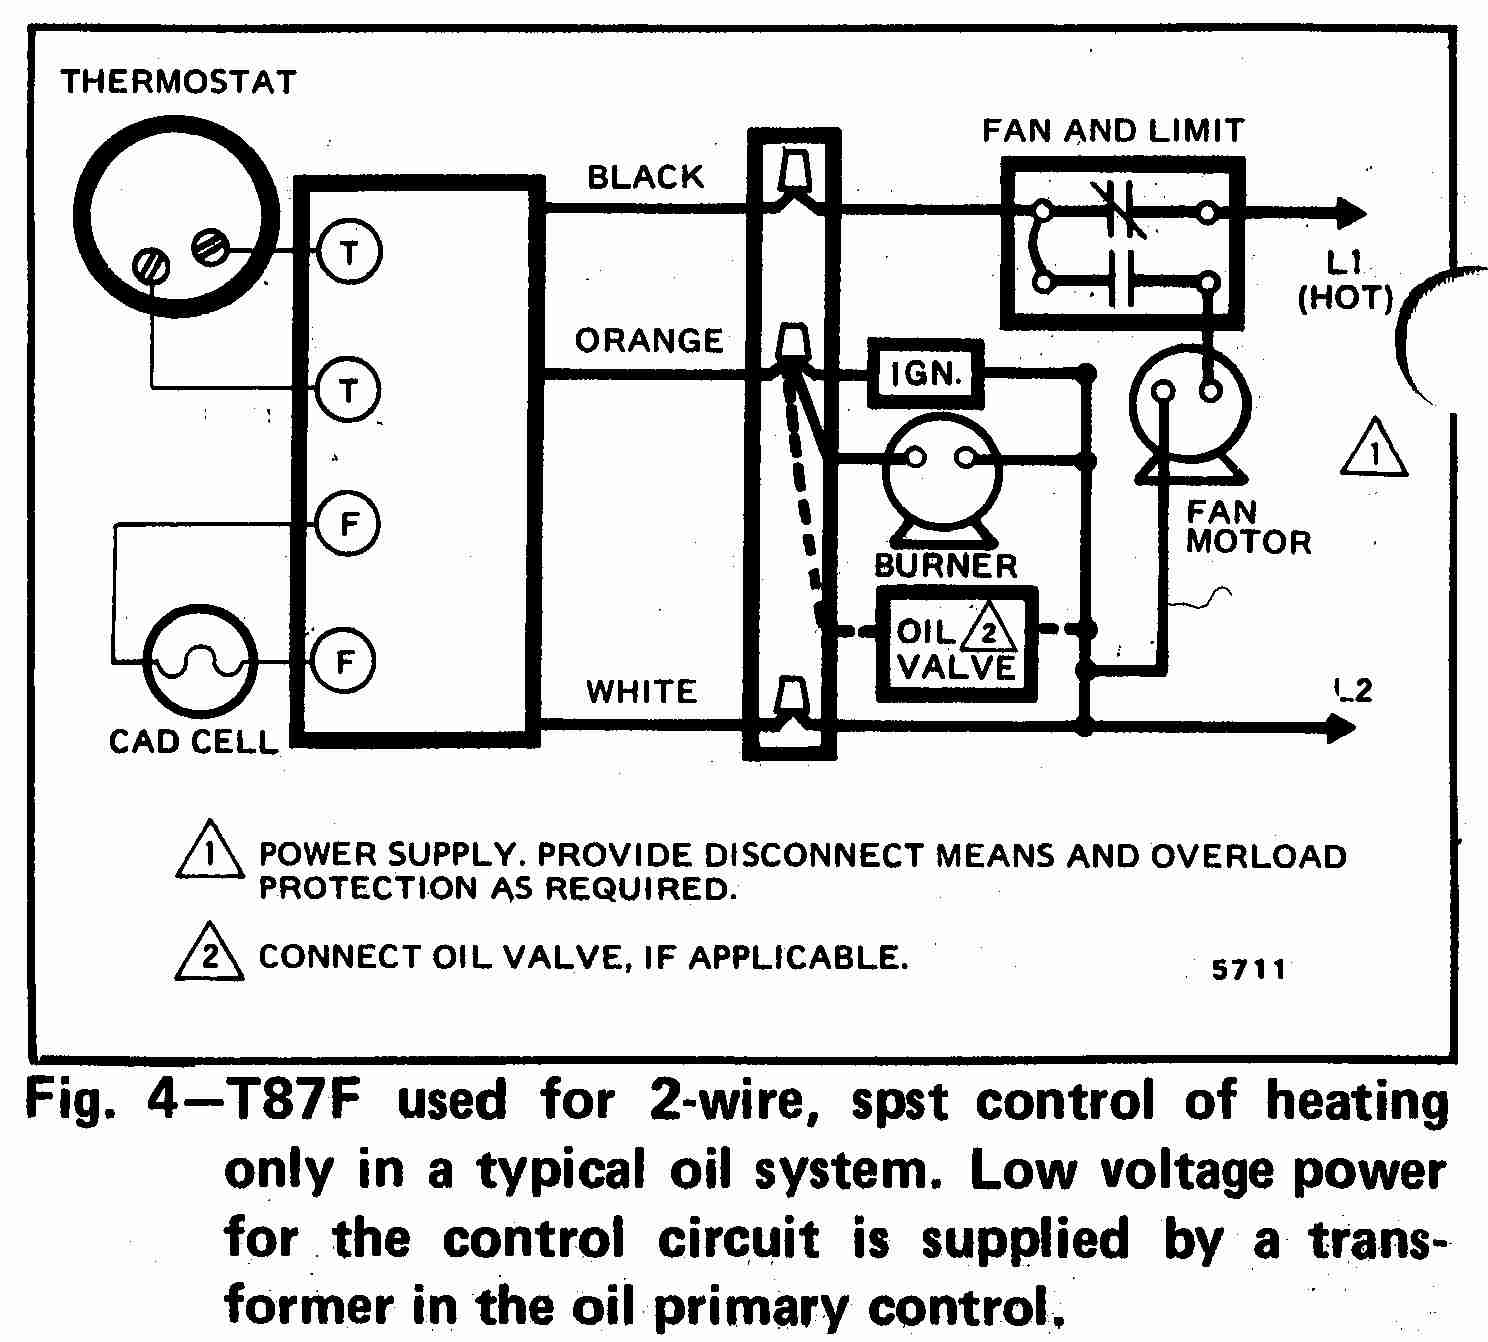 hvac wire diagram wiring diagram rh gregmadison co Thermostat Wiring for Furnace Only Furnace Thermostat Wiring Diagram